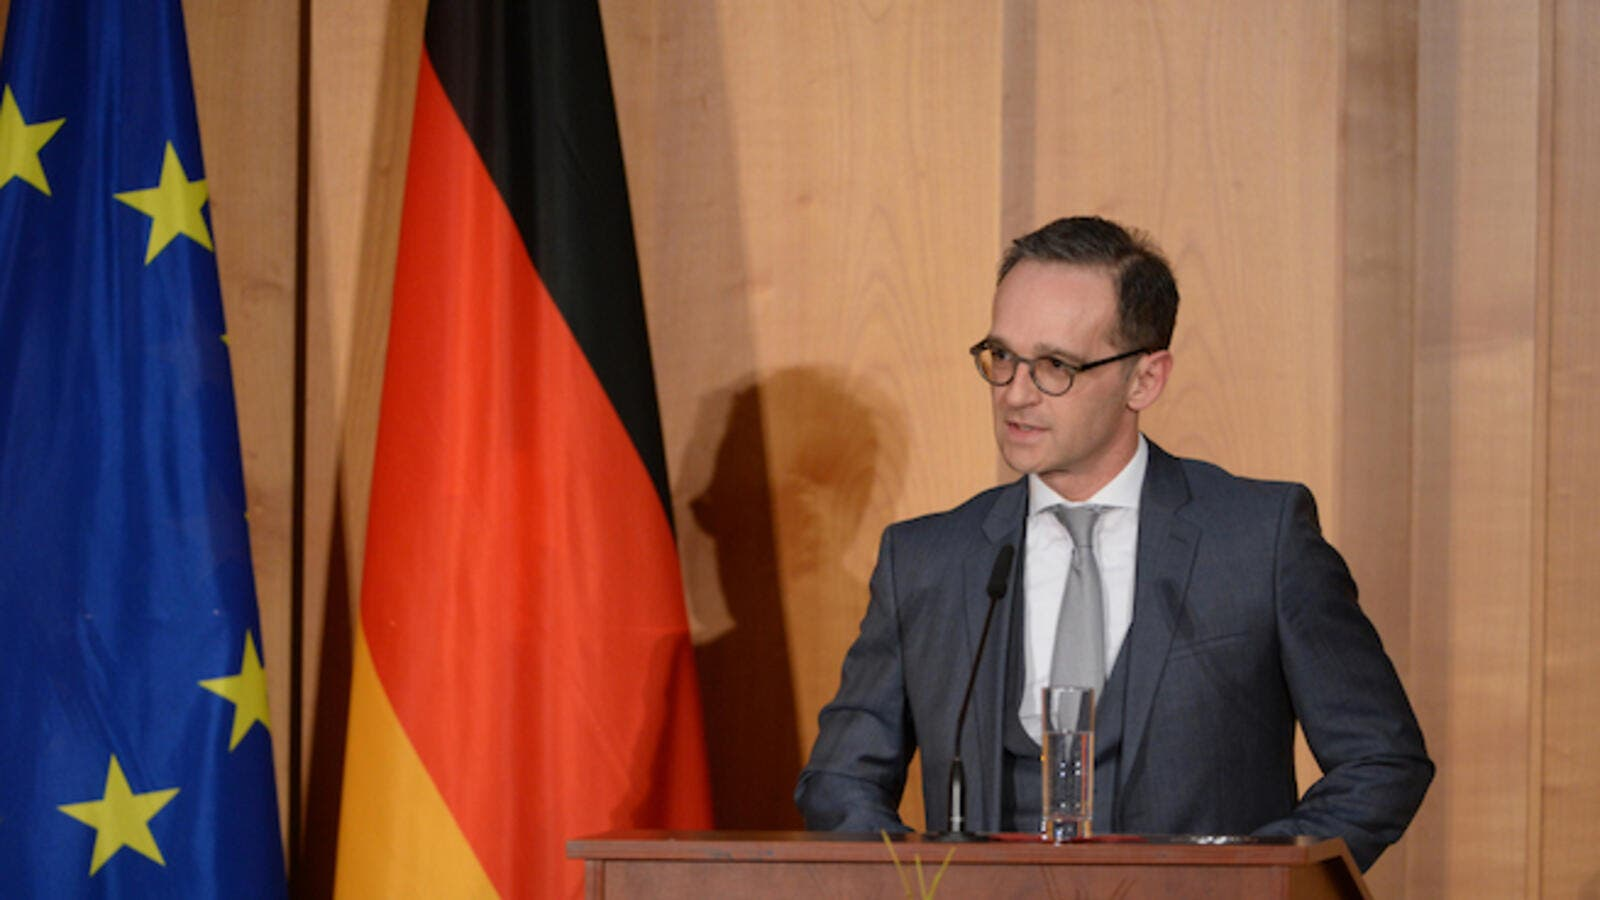 Germany's top diplomat also warned that new sanctions on Iran may further escalate tensions in the Middle East and become a threat to Europe's security. (Shutterstock)